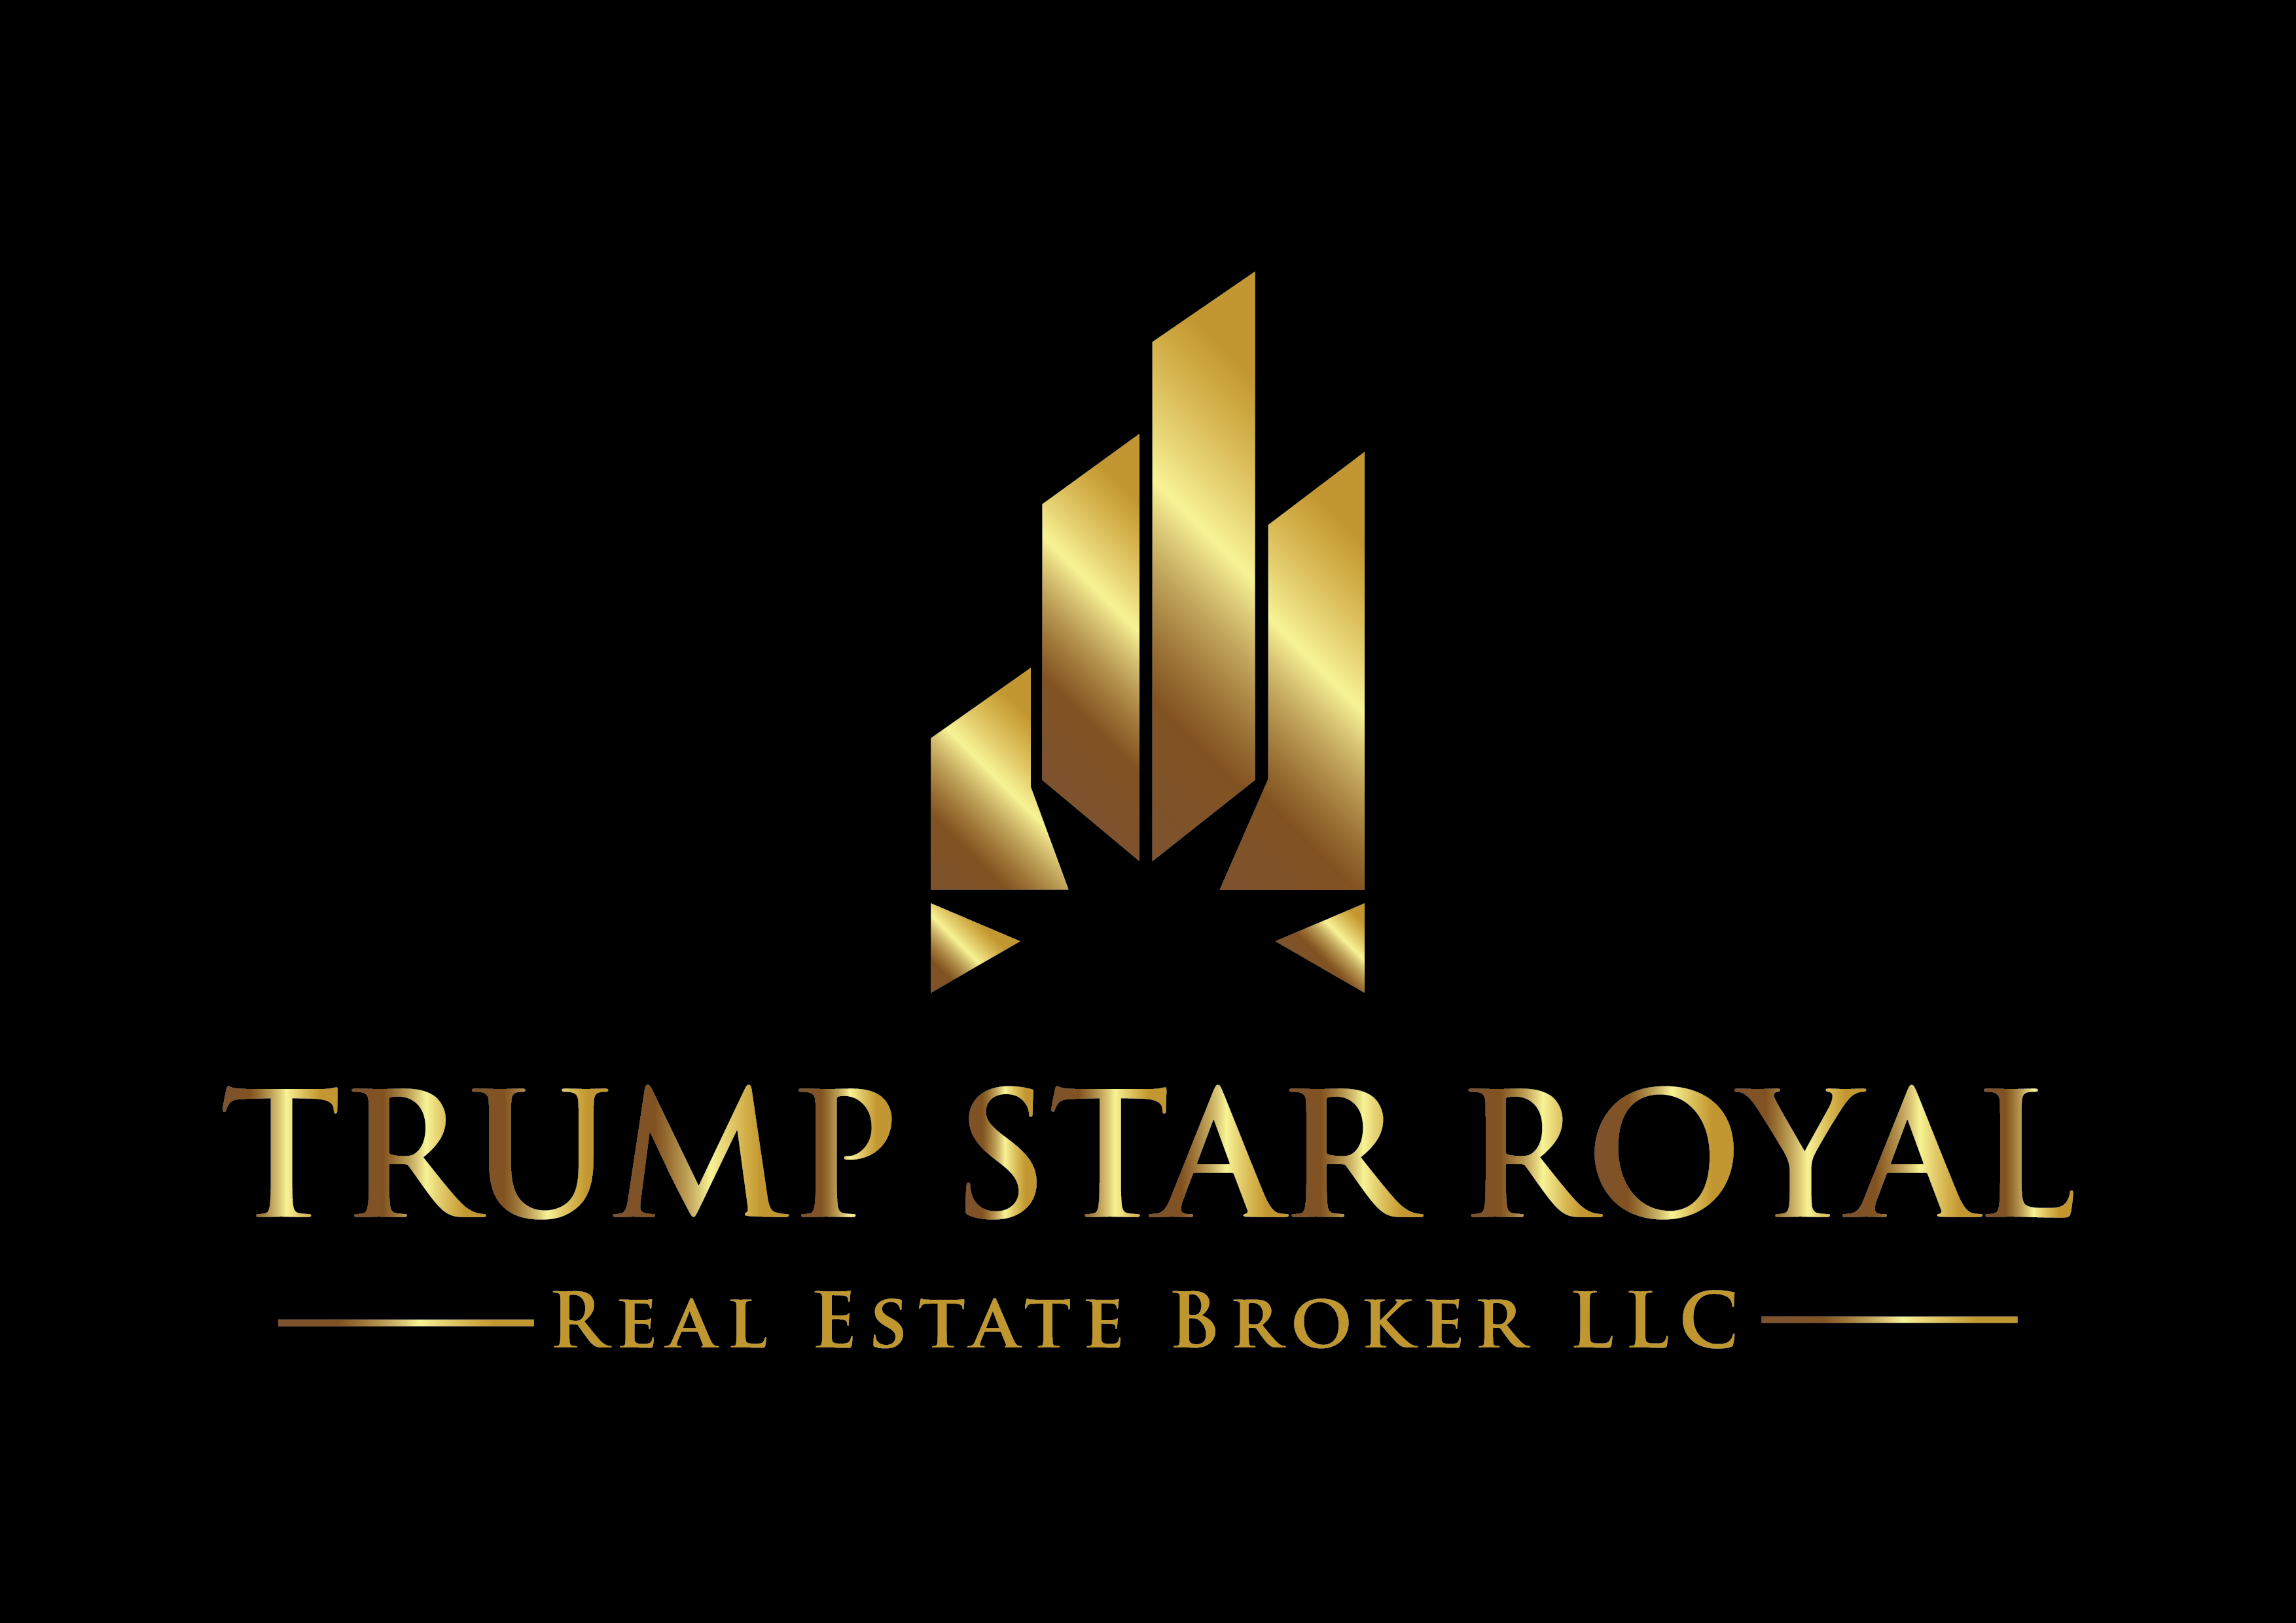 Trump Star Royal Real Estate L.L.C